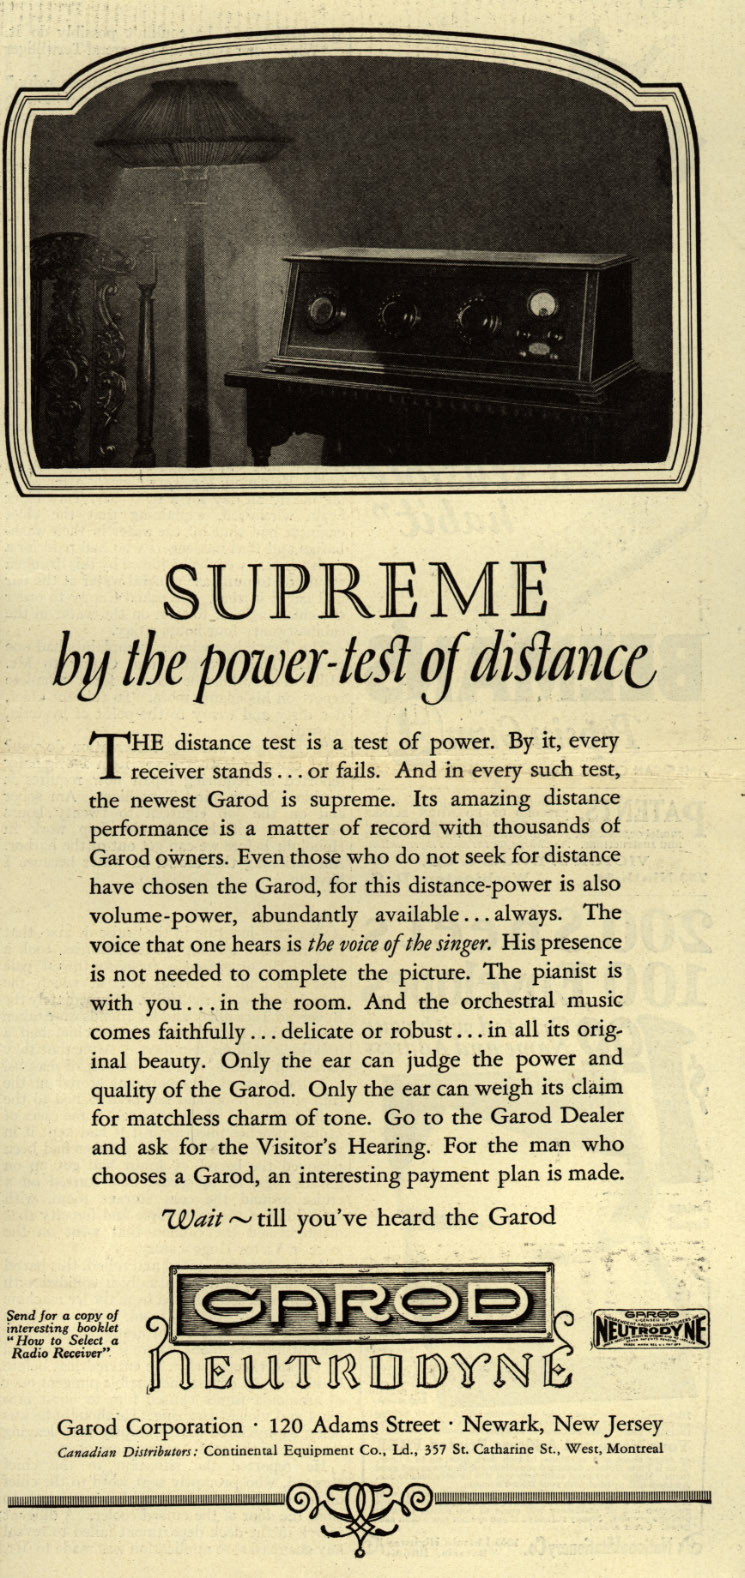 Supreme_by_the_power-test_of_distance